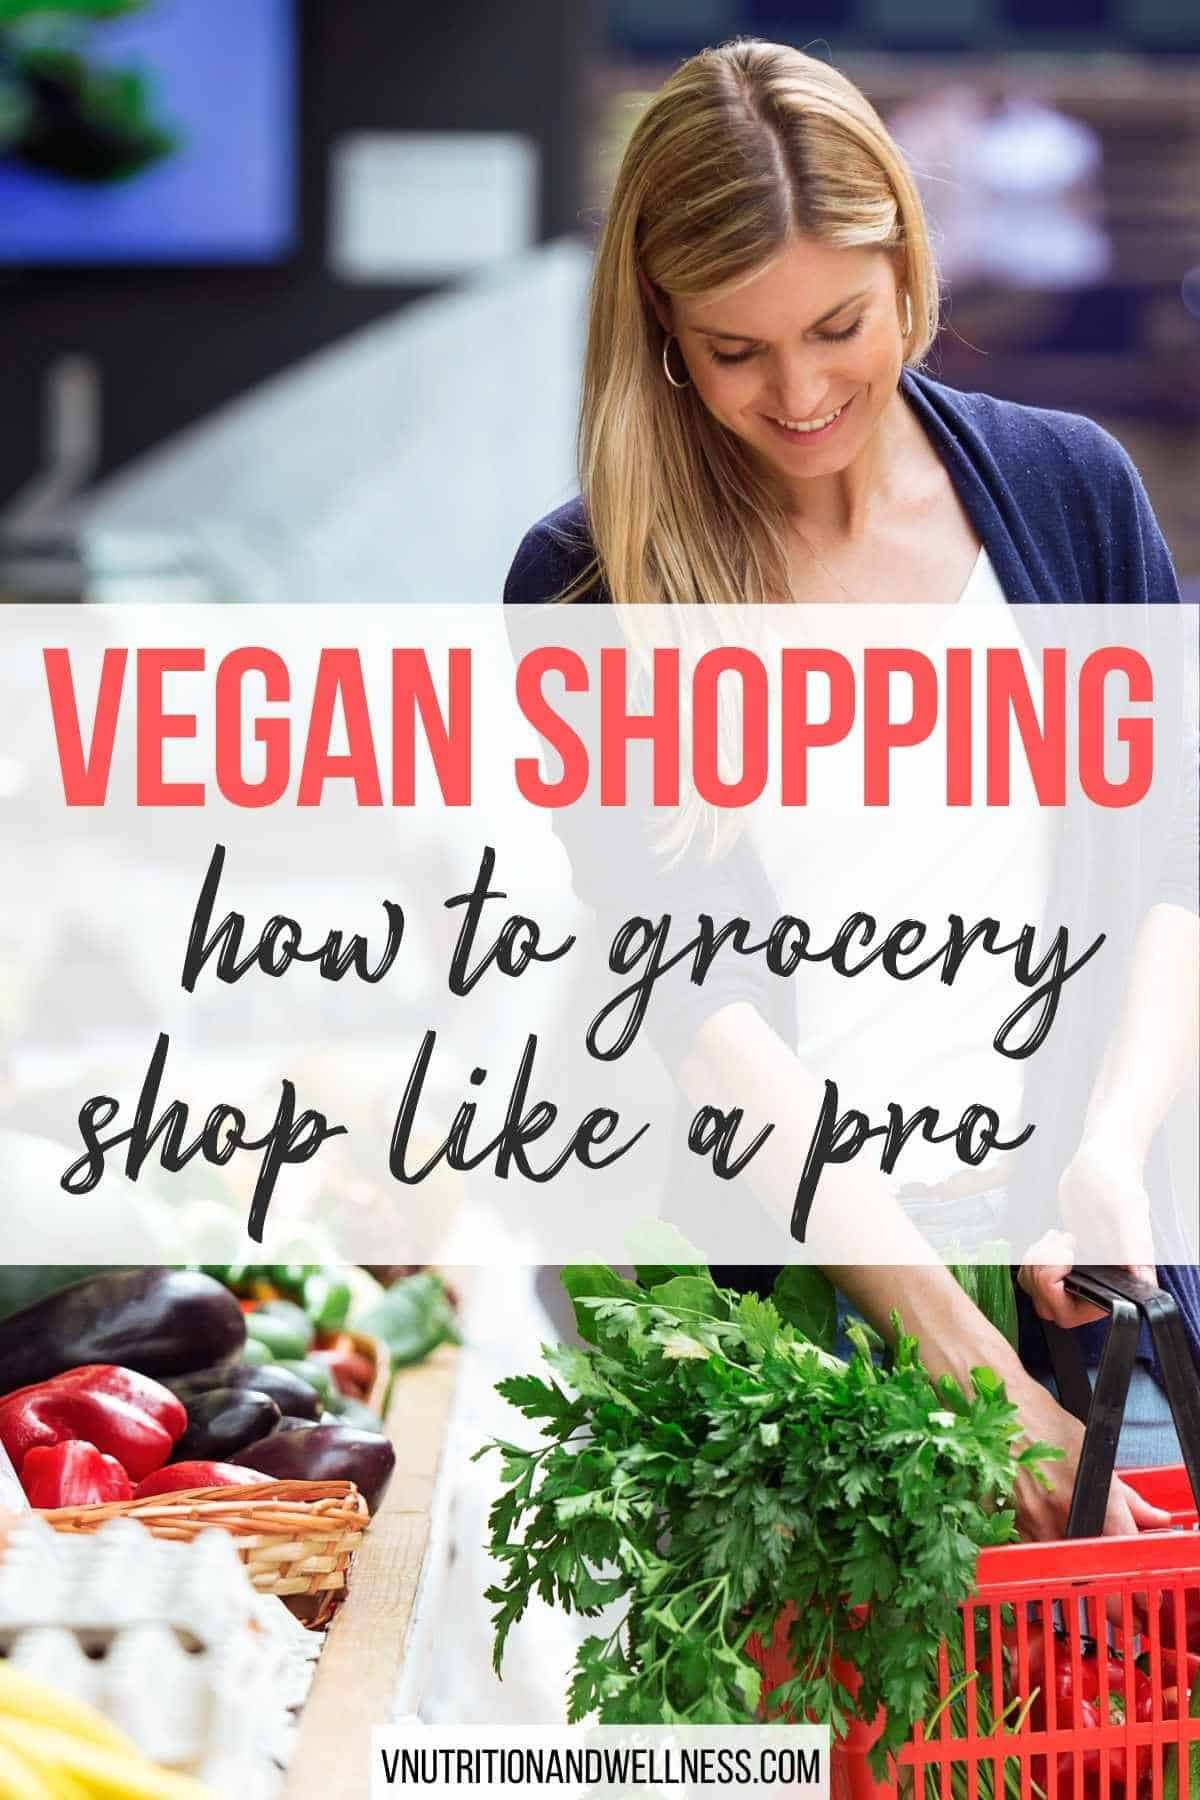 vegan shopping with woman in outdoor market